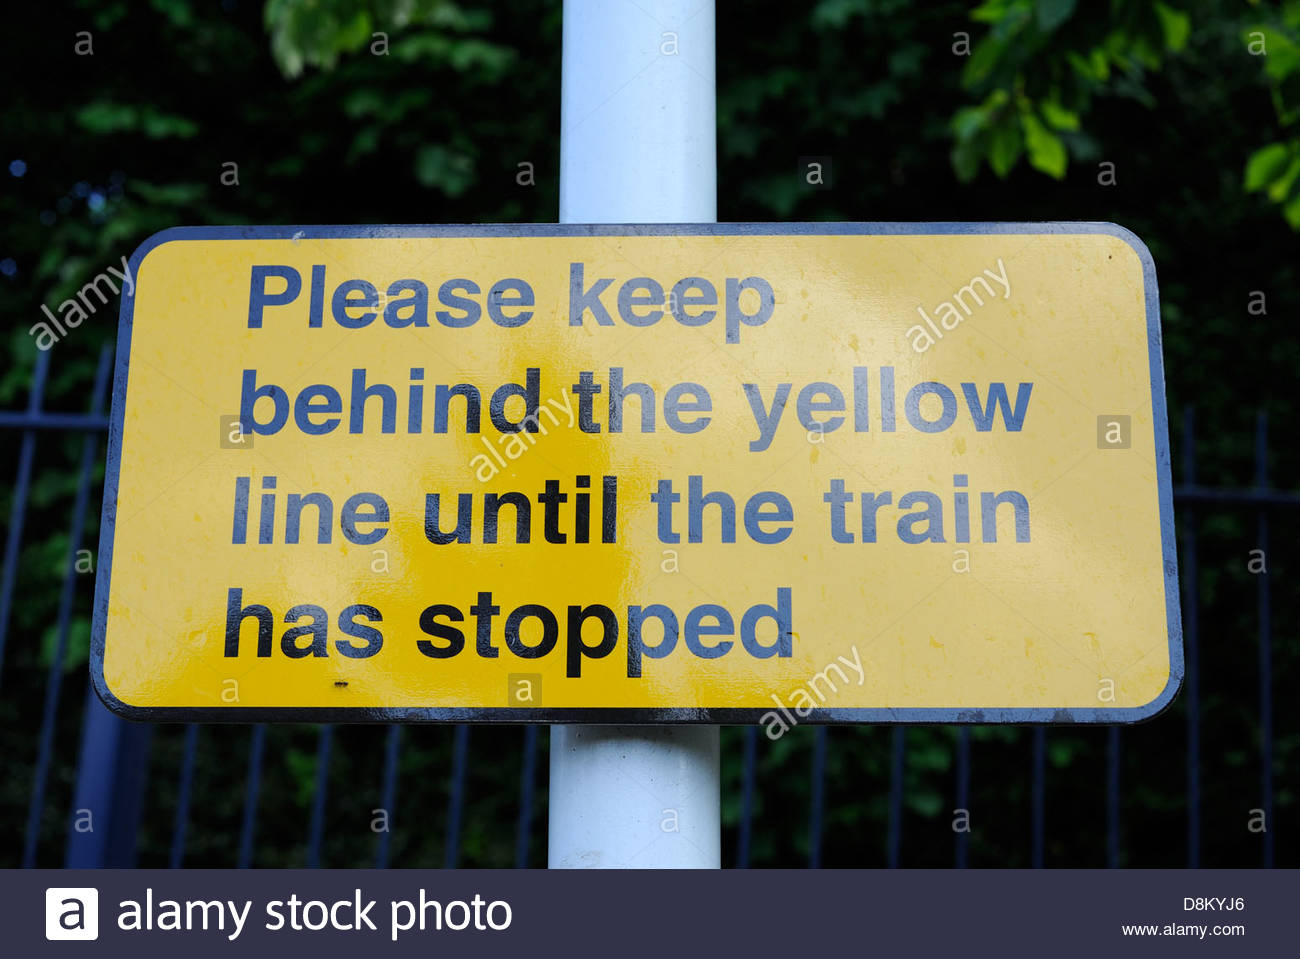 Sholing Southampton UK Station sign Please wait behind the yellow line until the train has stopped. - Stock Image